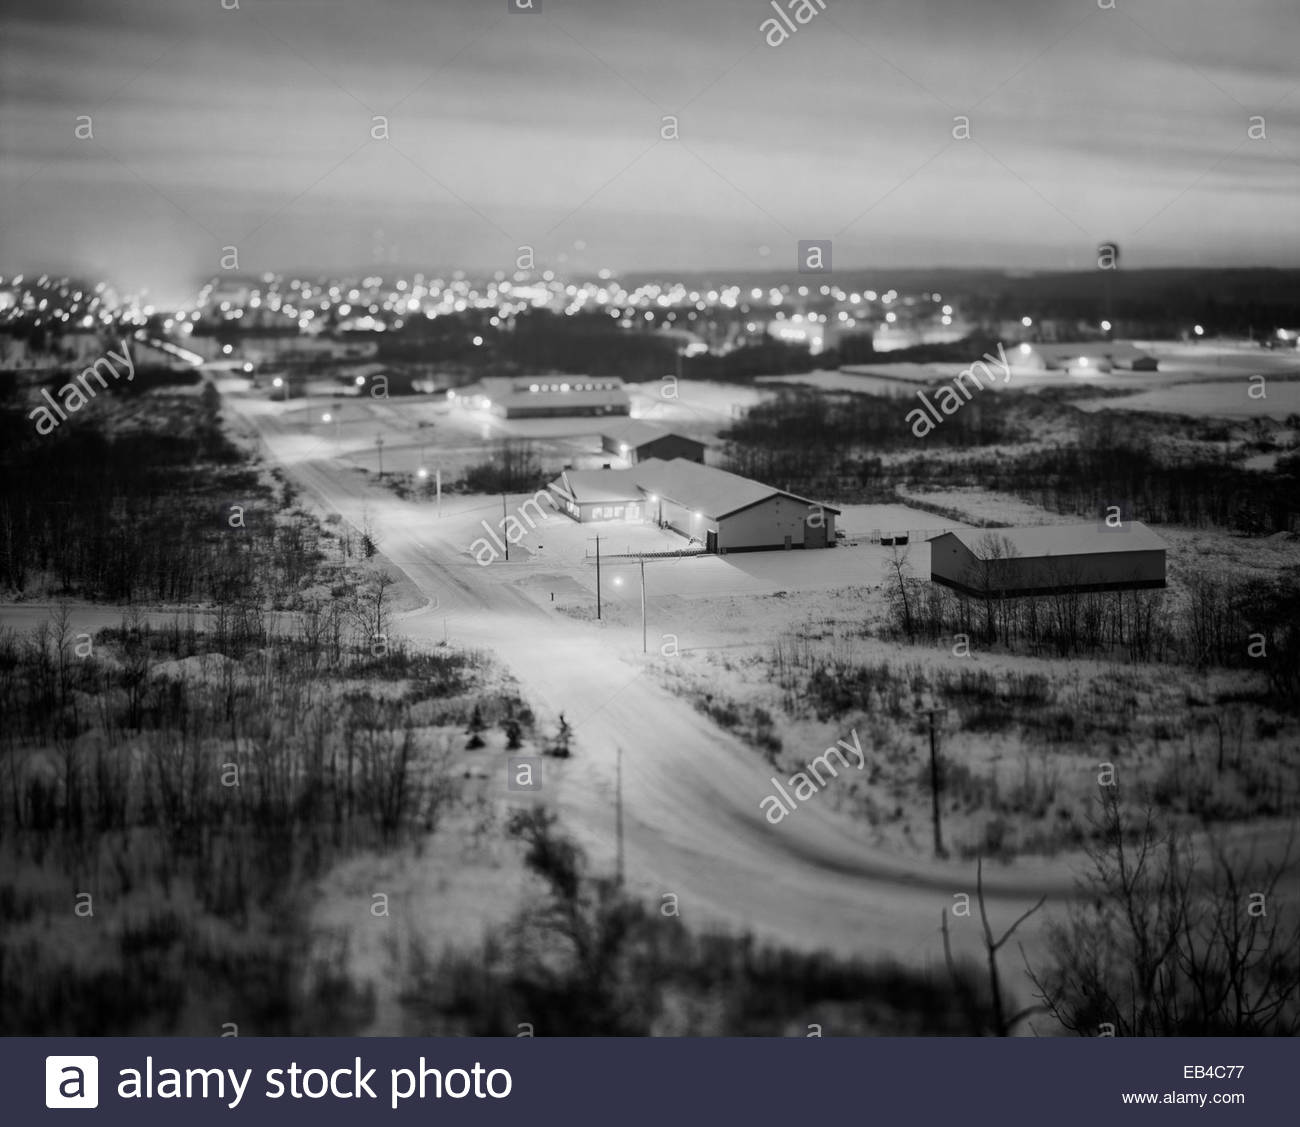 The town of Hibbing, Minnesota, location of the Hull Rust Mahoning Open Pit Iron Mine. - Stock Image